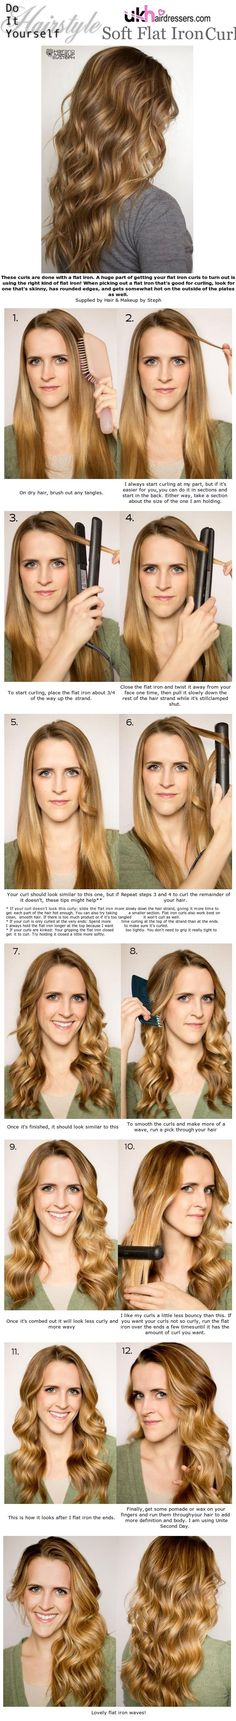 Flat iron curls--trying this.